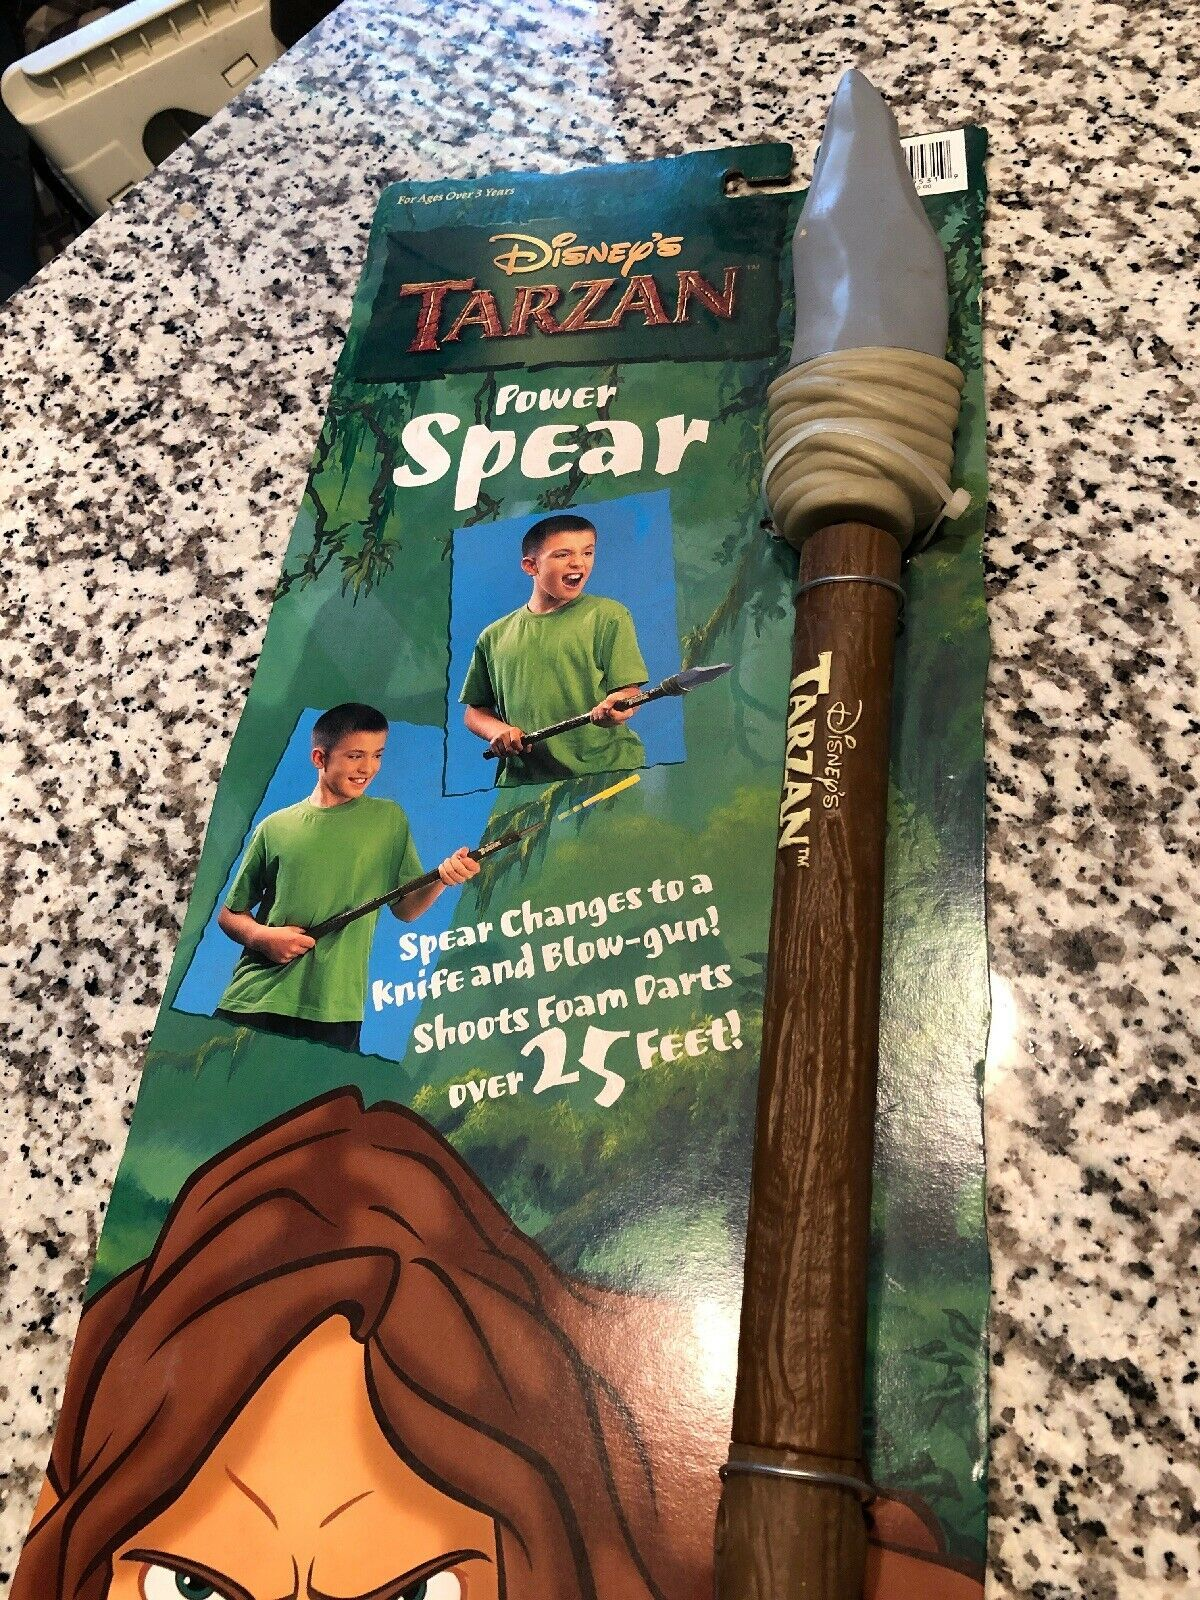 Disney's Tarzan Power Spear and 50 similar items